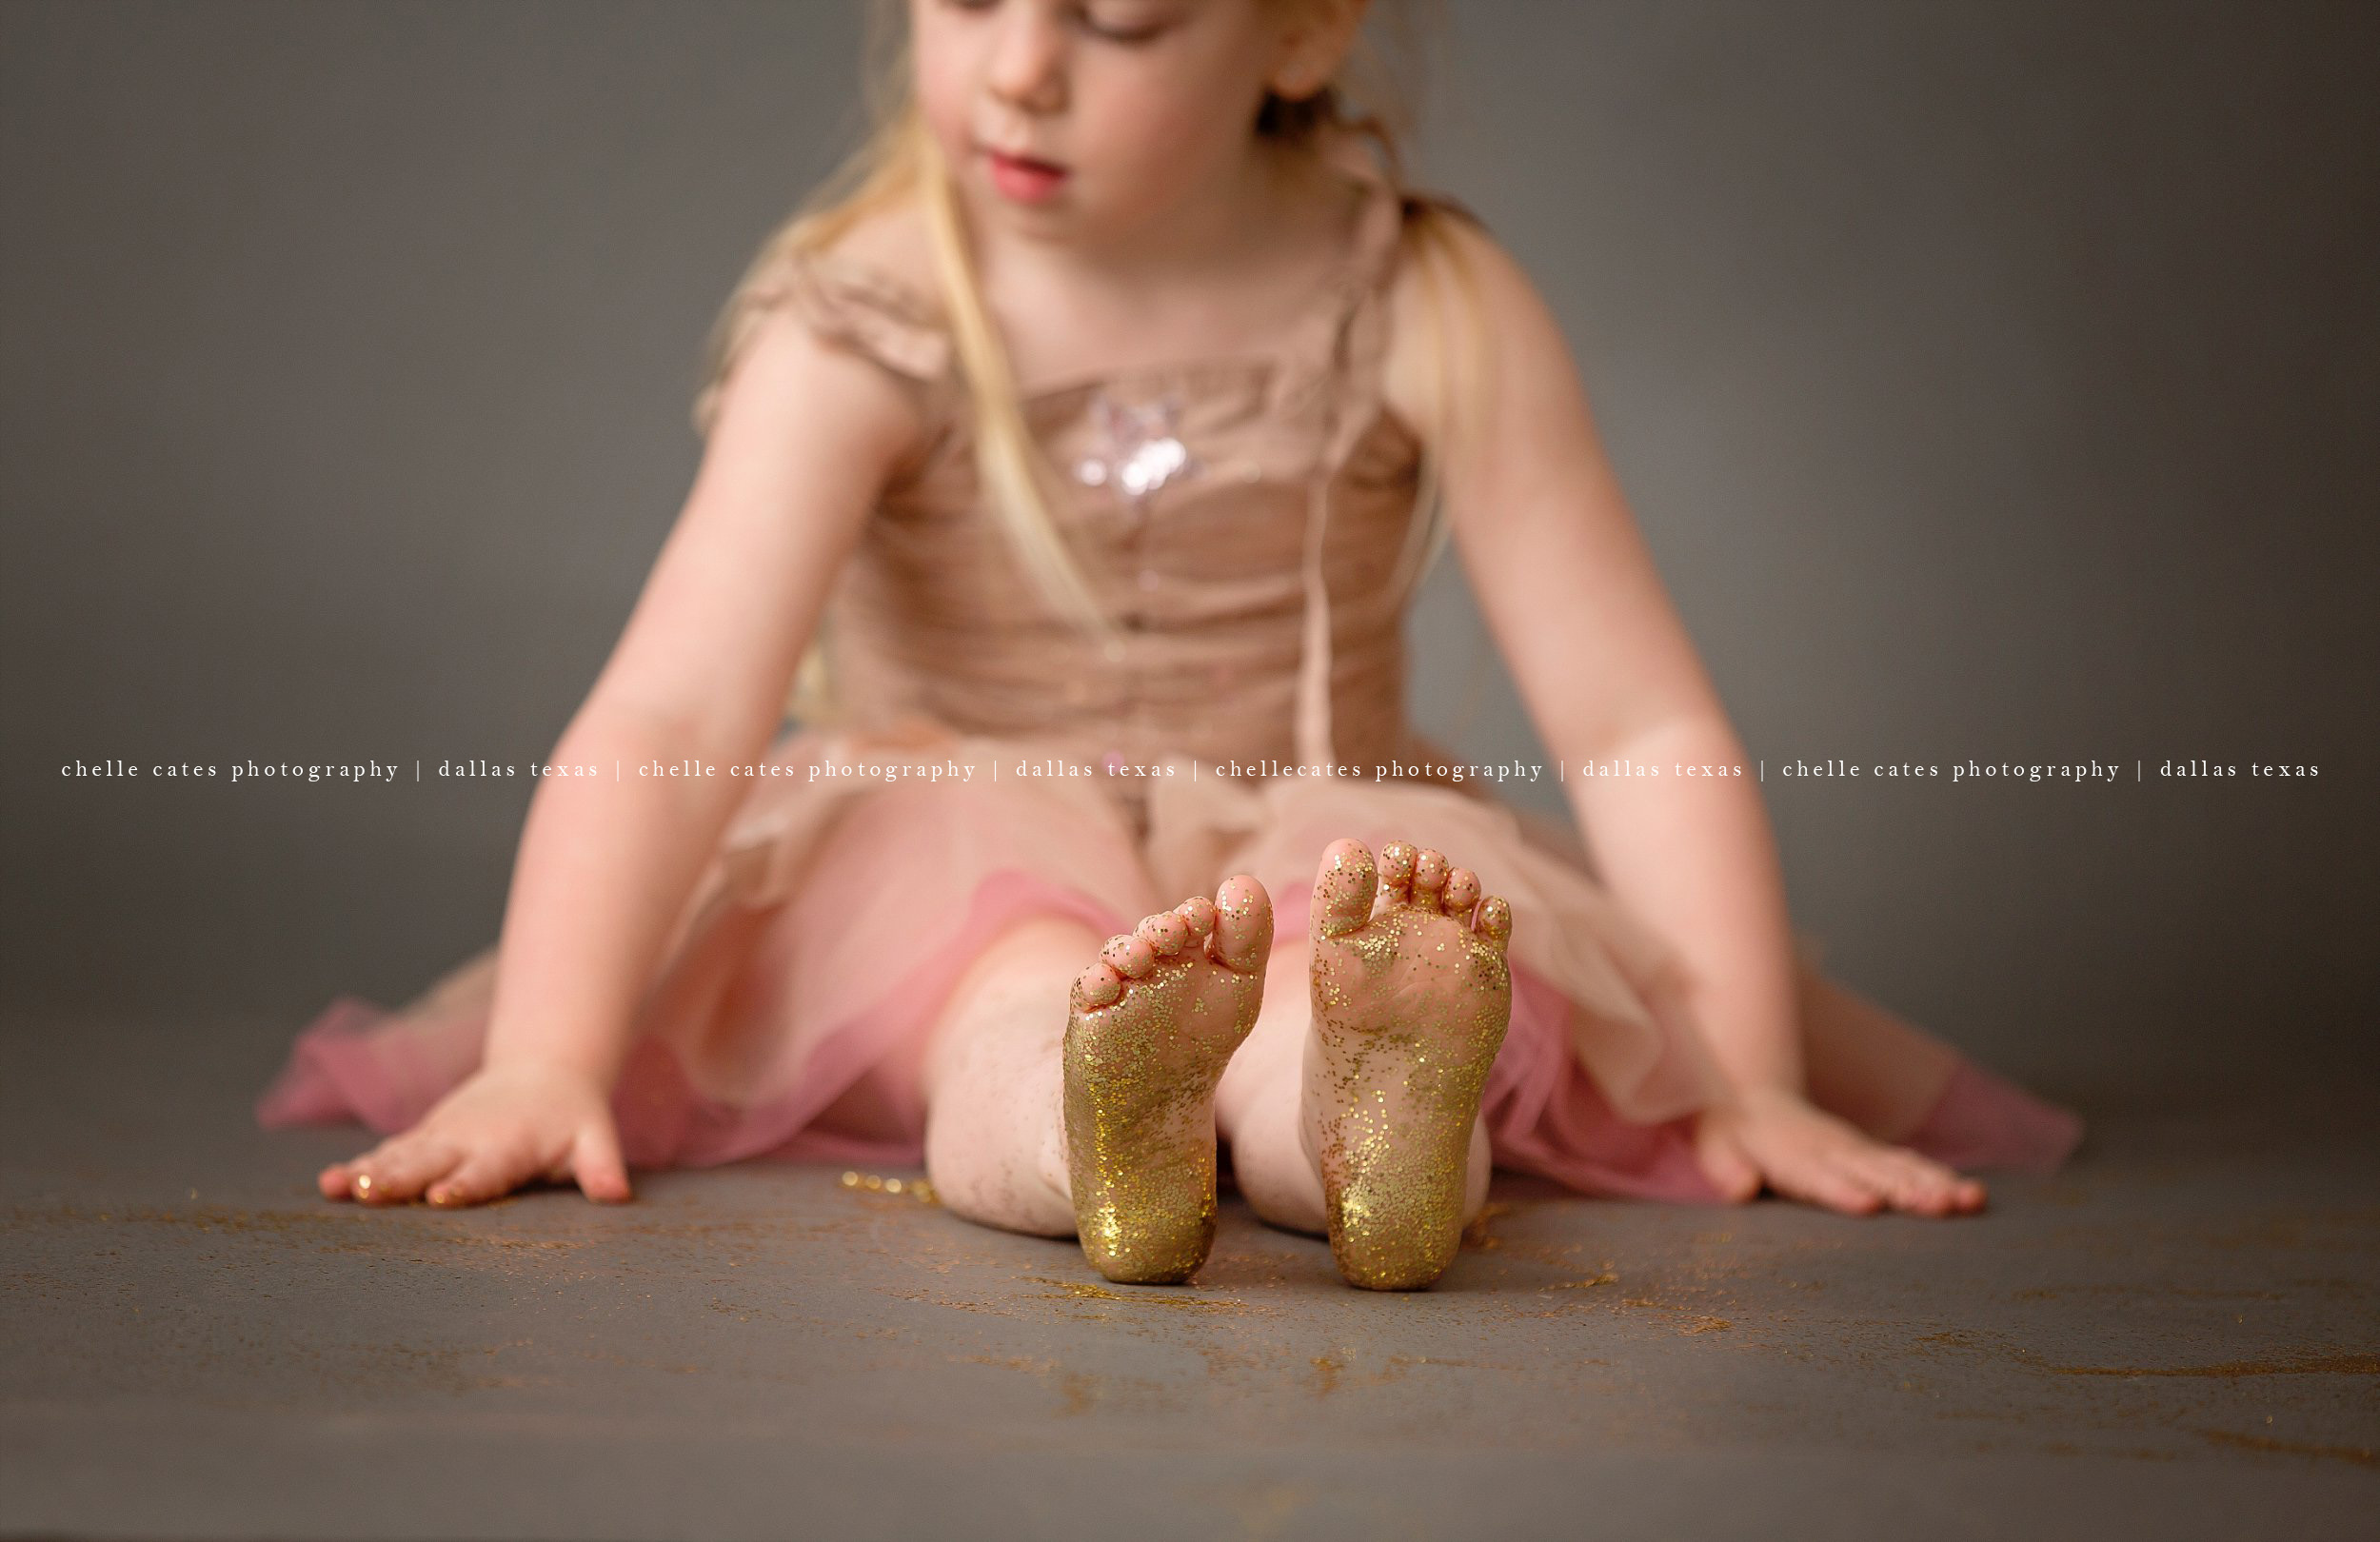 4 year old little girl sitting on Savage Thunder Gray seamless paper with her feet covered in gold glitter while she played in the glitter all over the floor! Photos taken at Chelle Cates Photography in Dallas Texas.